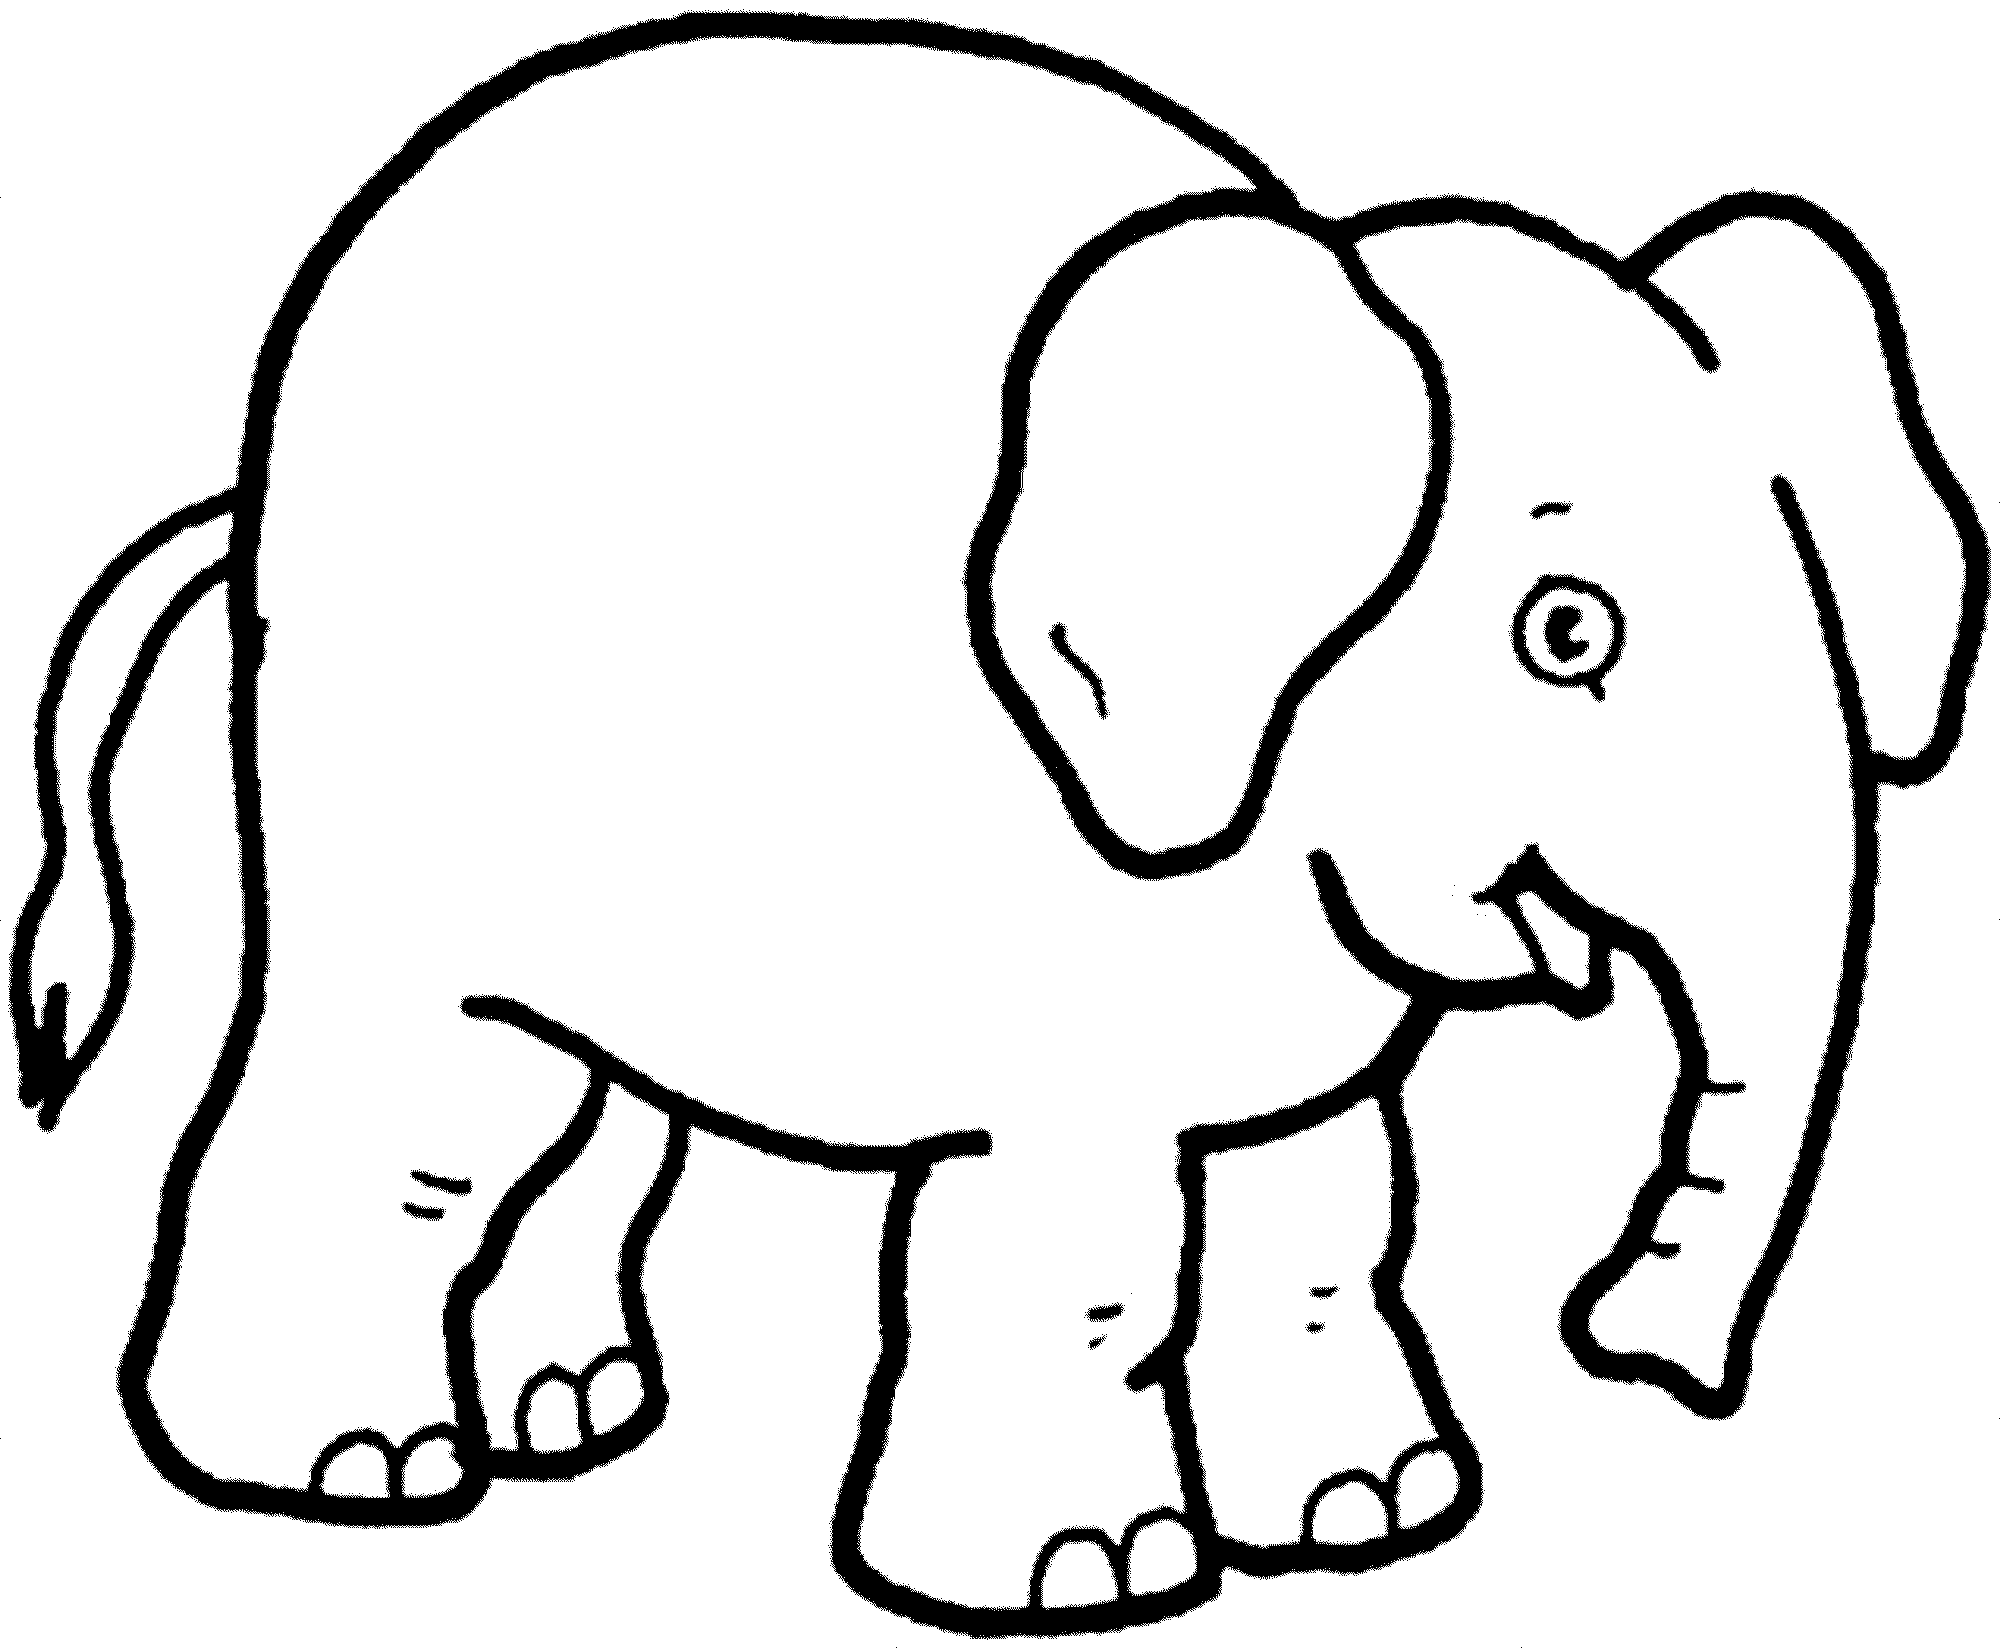 Print & Download - Teaching Kids through Elephant Coloring Pages